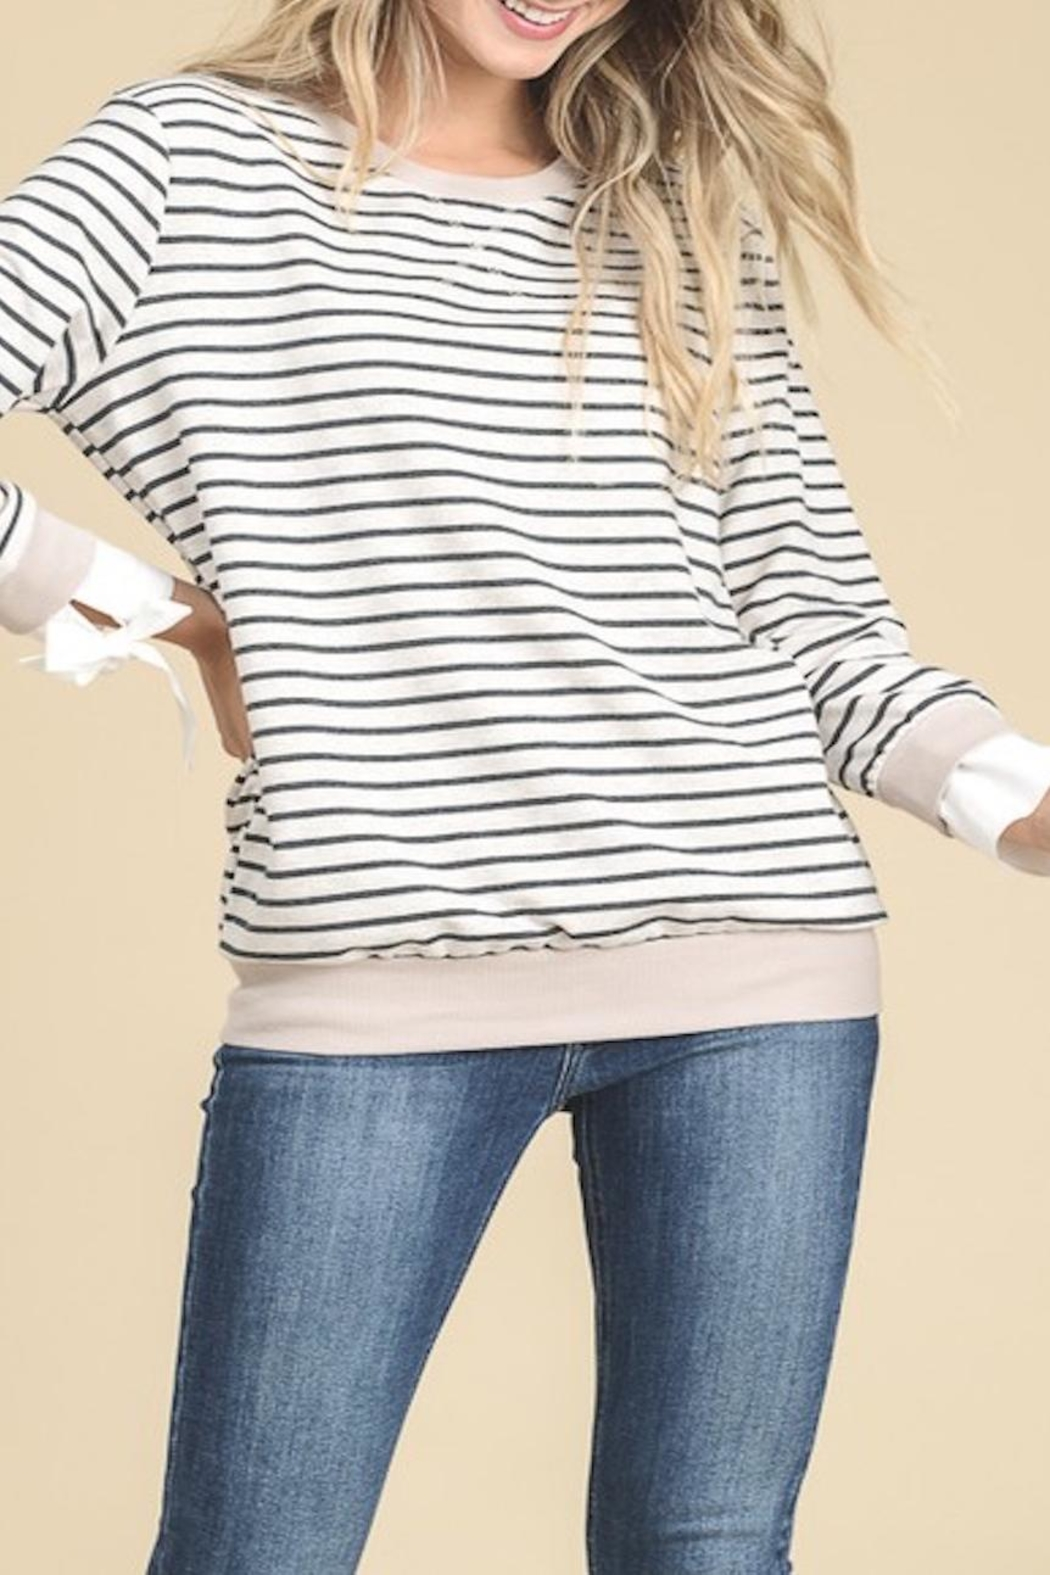 Apricot Lane Side Tie Sweater - Main Image